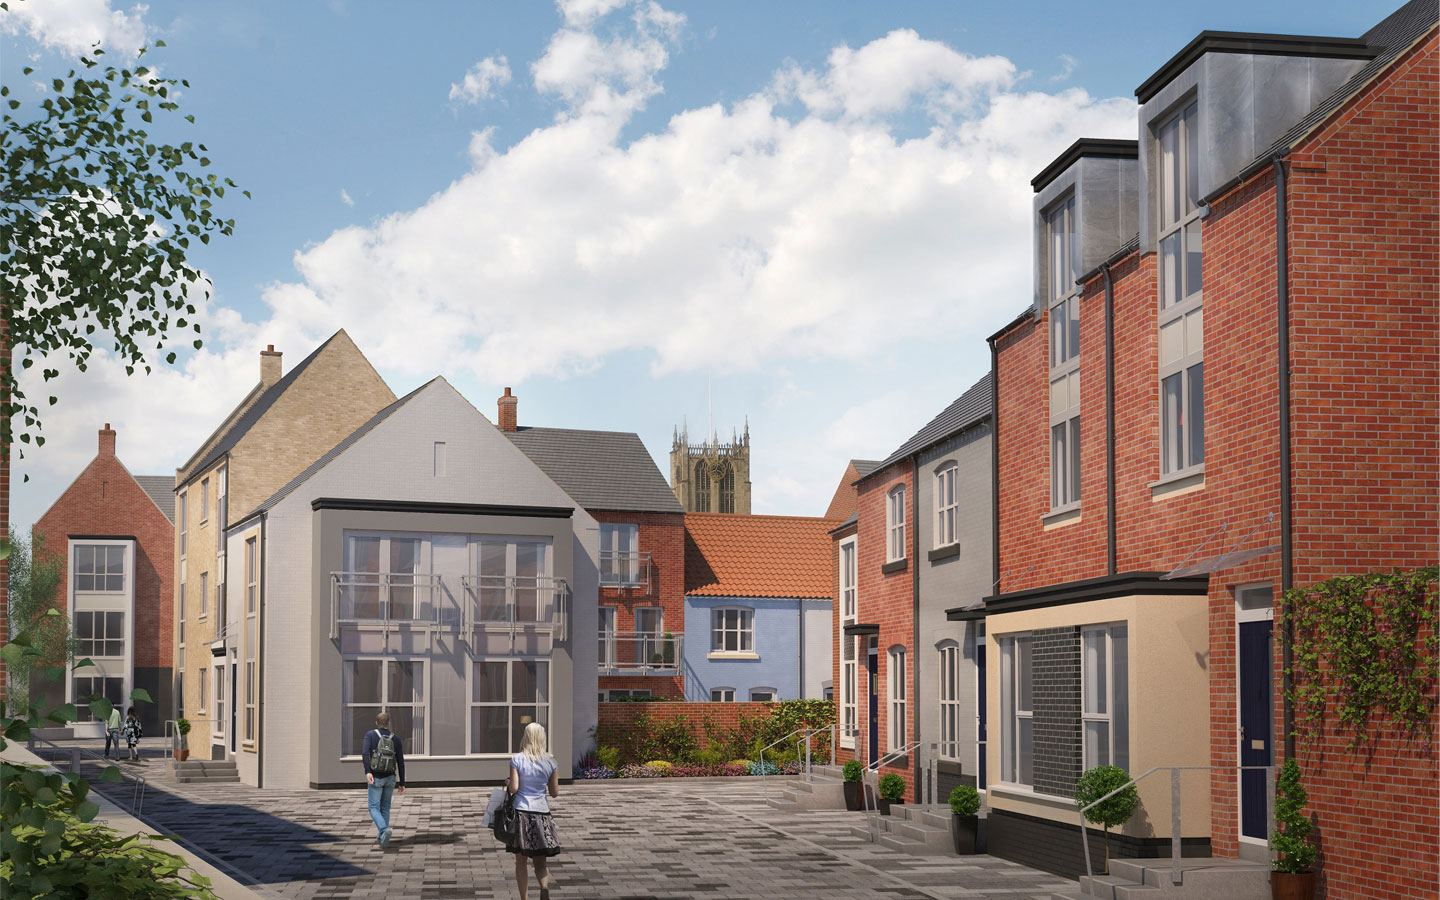 The approved plans for new housing in Hull's Fruit Market include the reinstatement of historic Scott's Square.